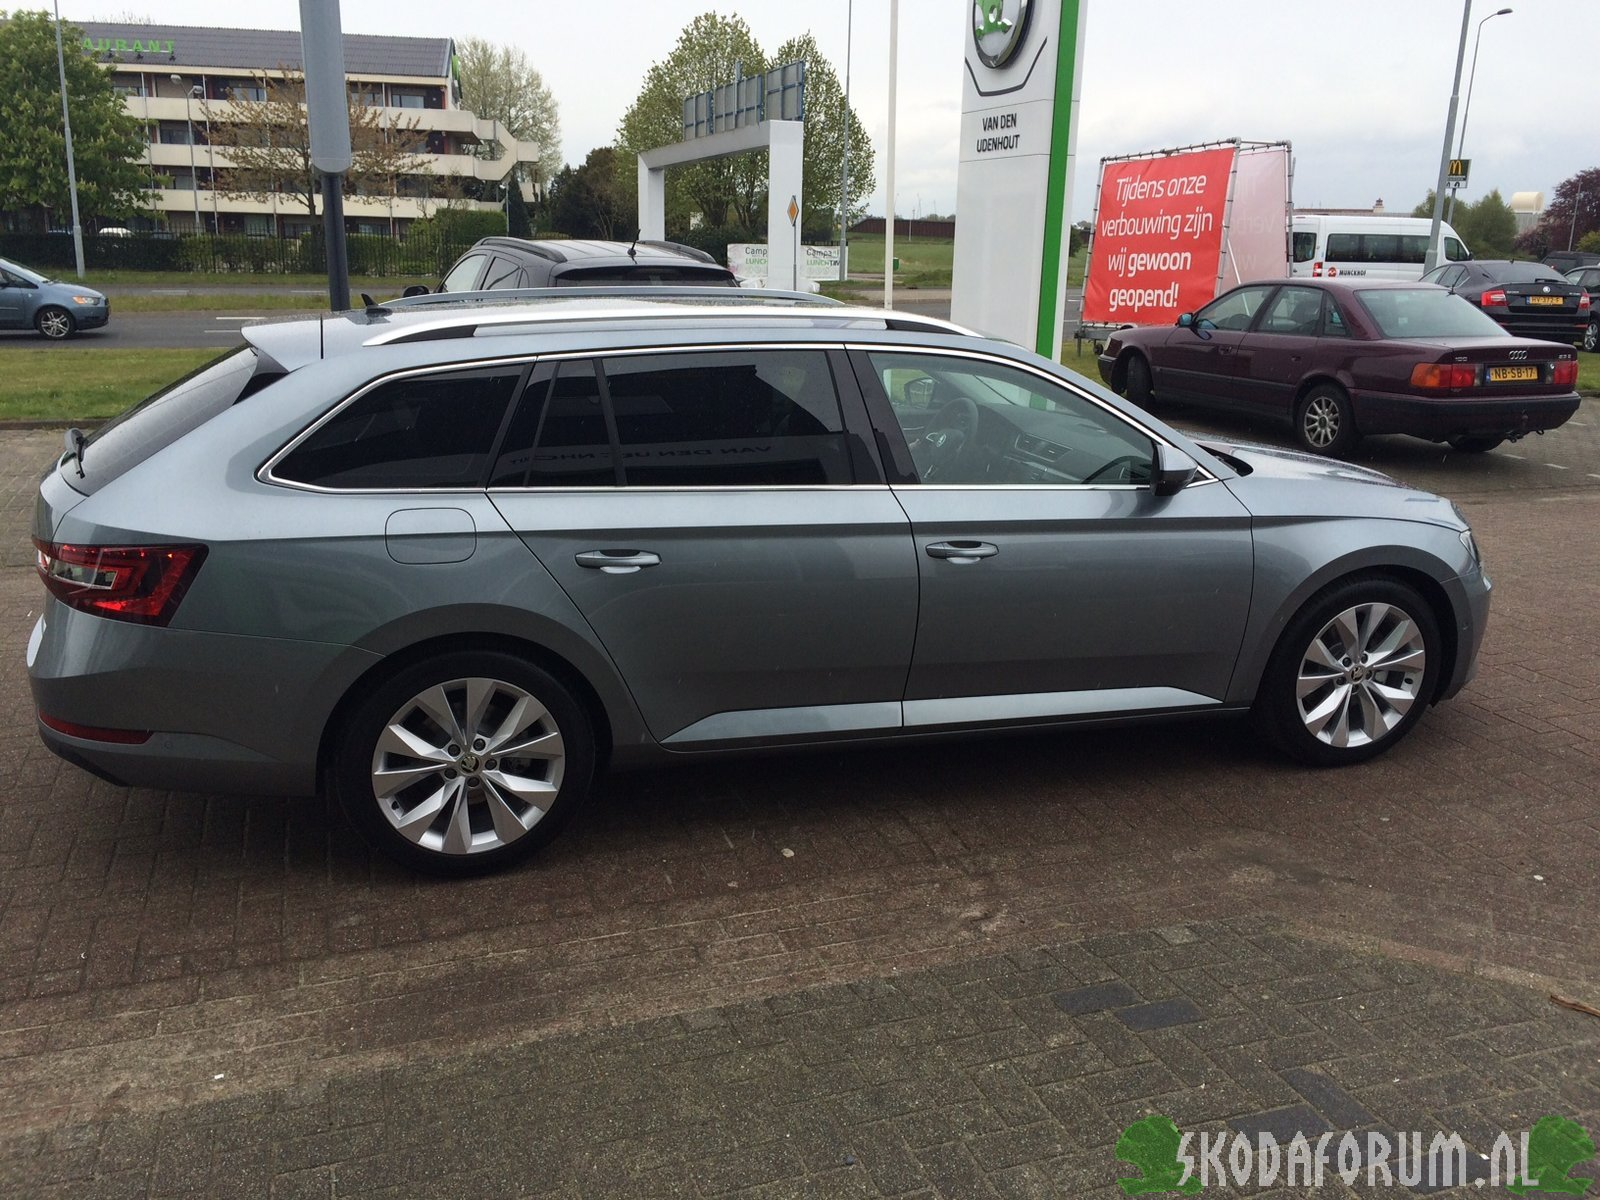 aflevering superb combi business grey skodaforum nl